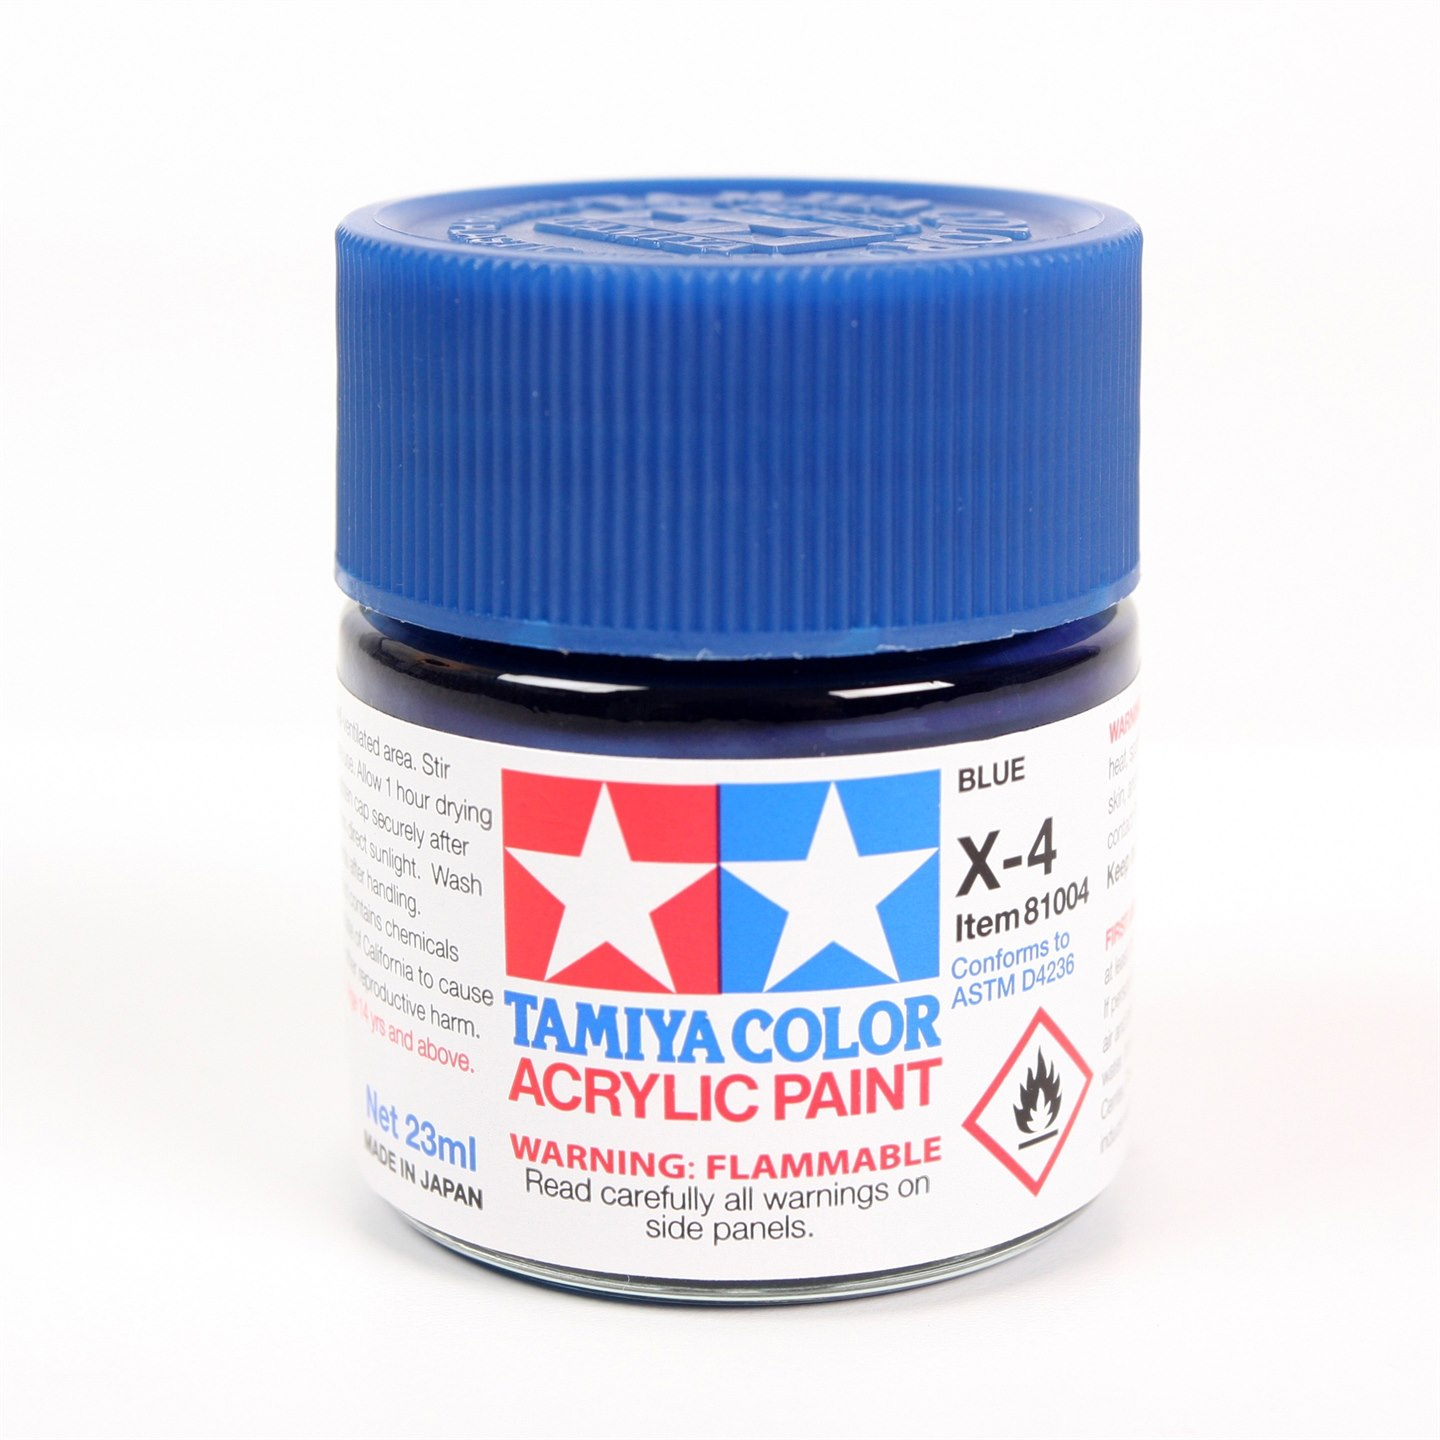 Tamiya Color Acrylic Paint X-04 (Blue) (23ml)